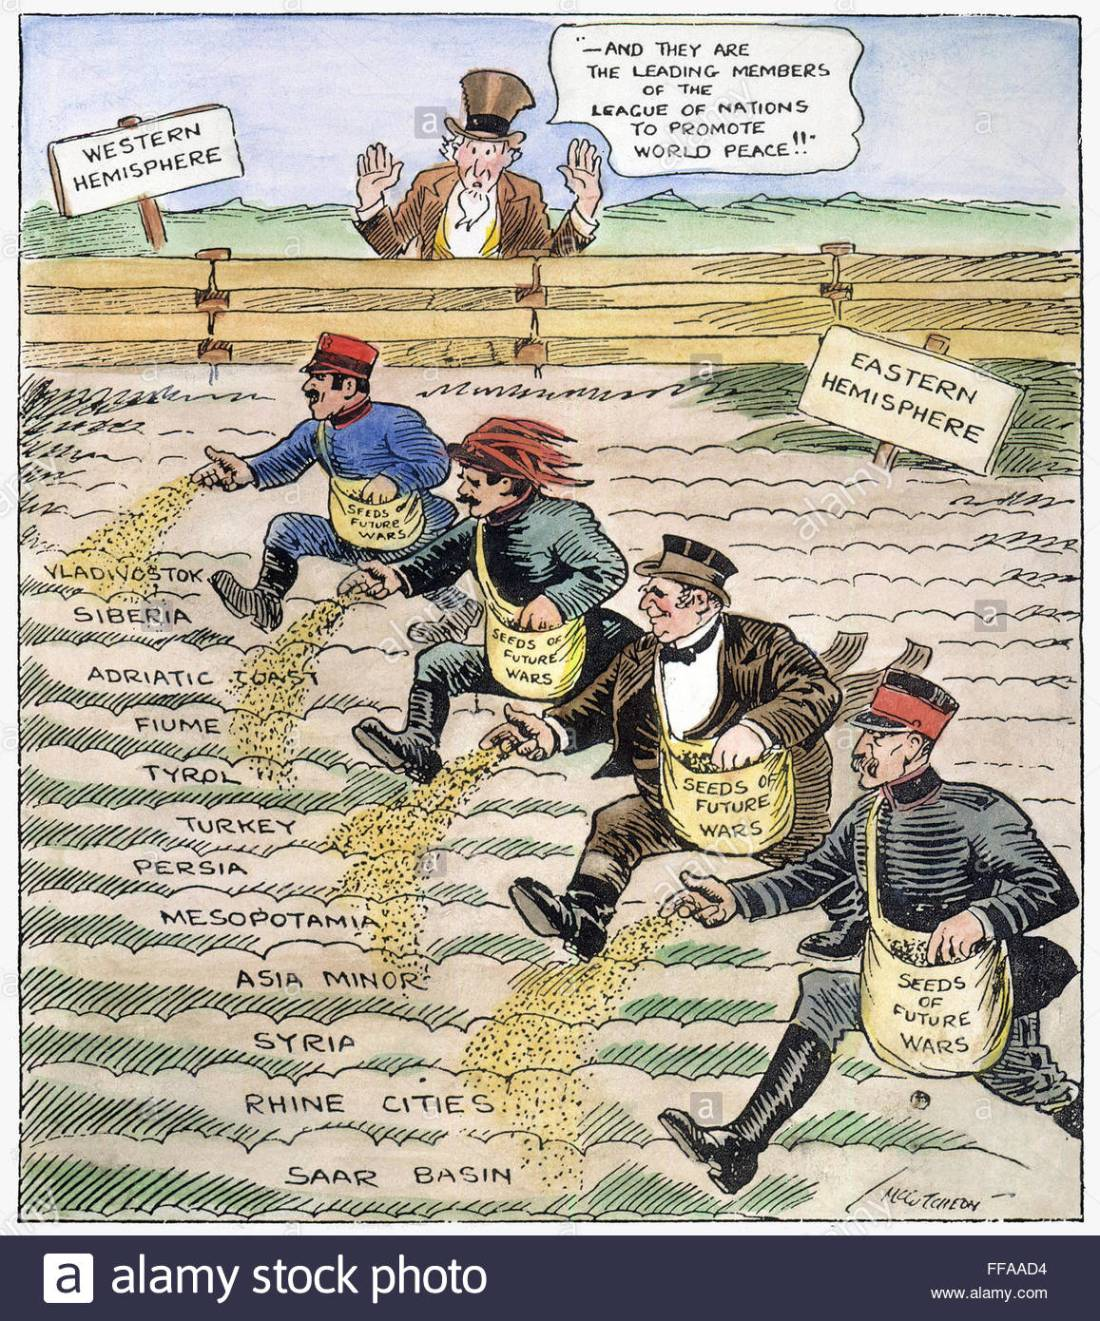 league-of-nations-cartoon-ncartoon-by-john-t-mccutcheon-for-the-chicago-FFAAD4